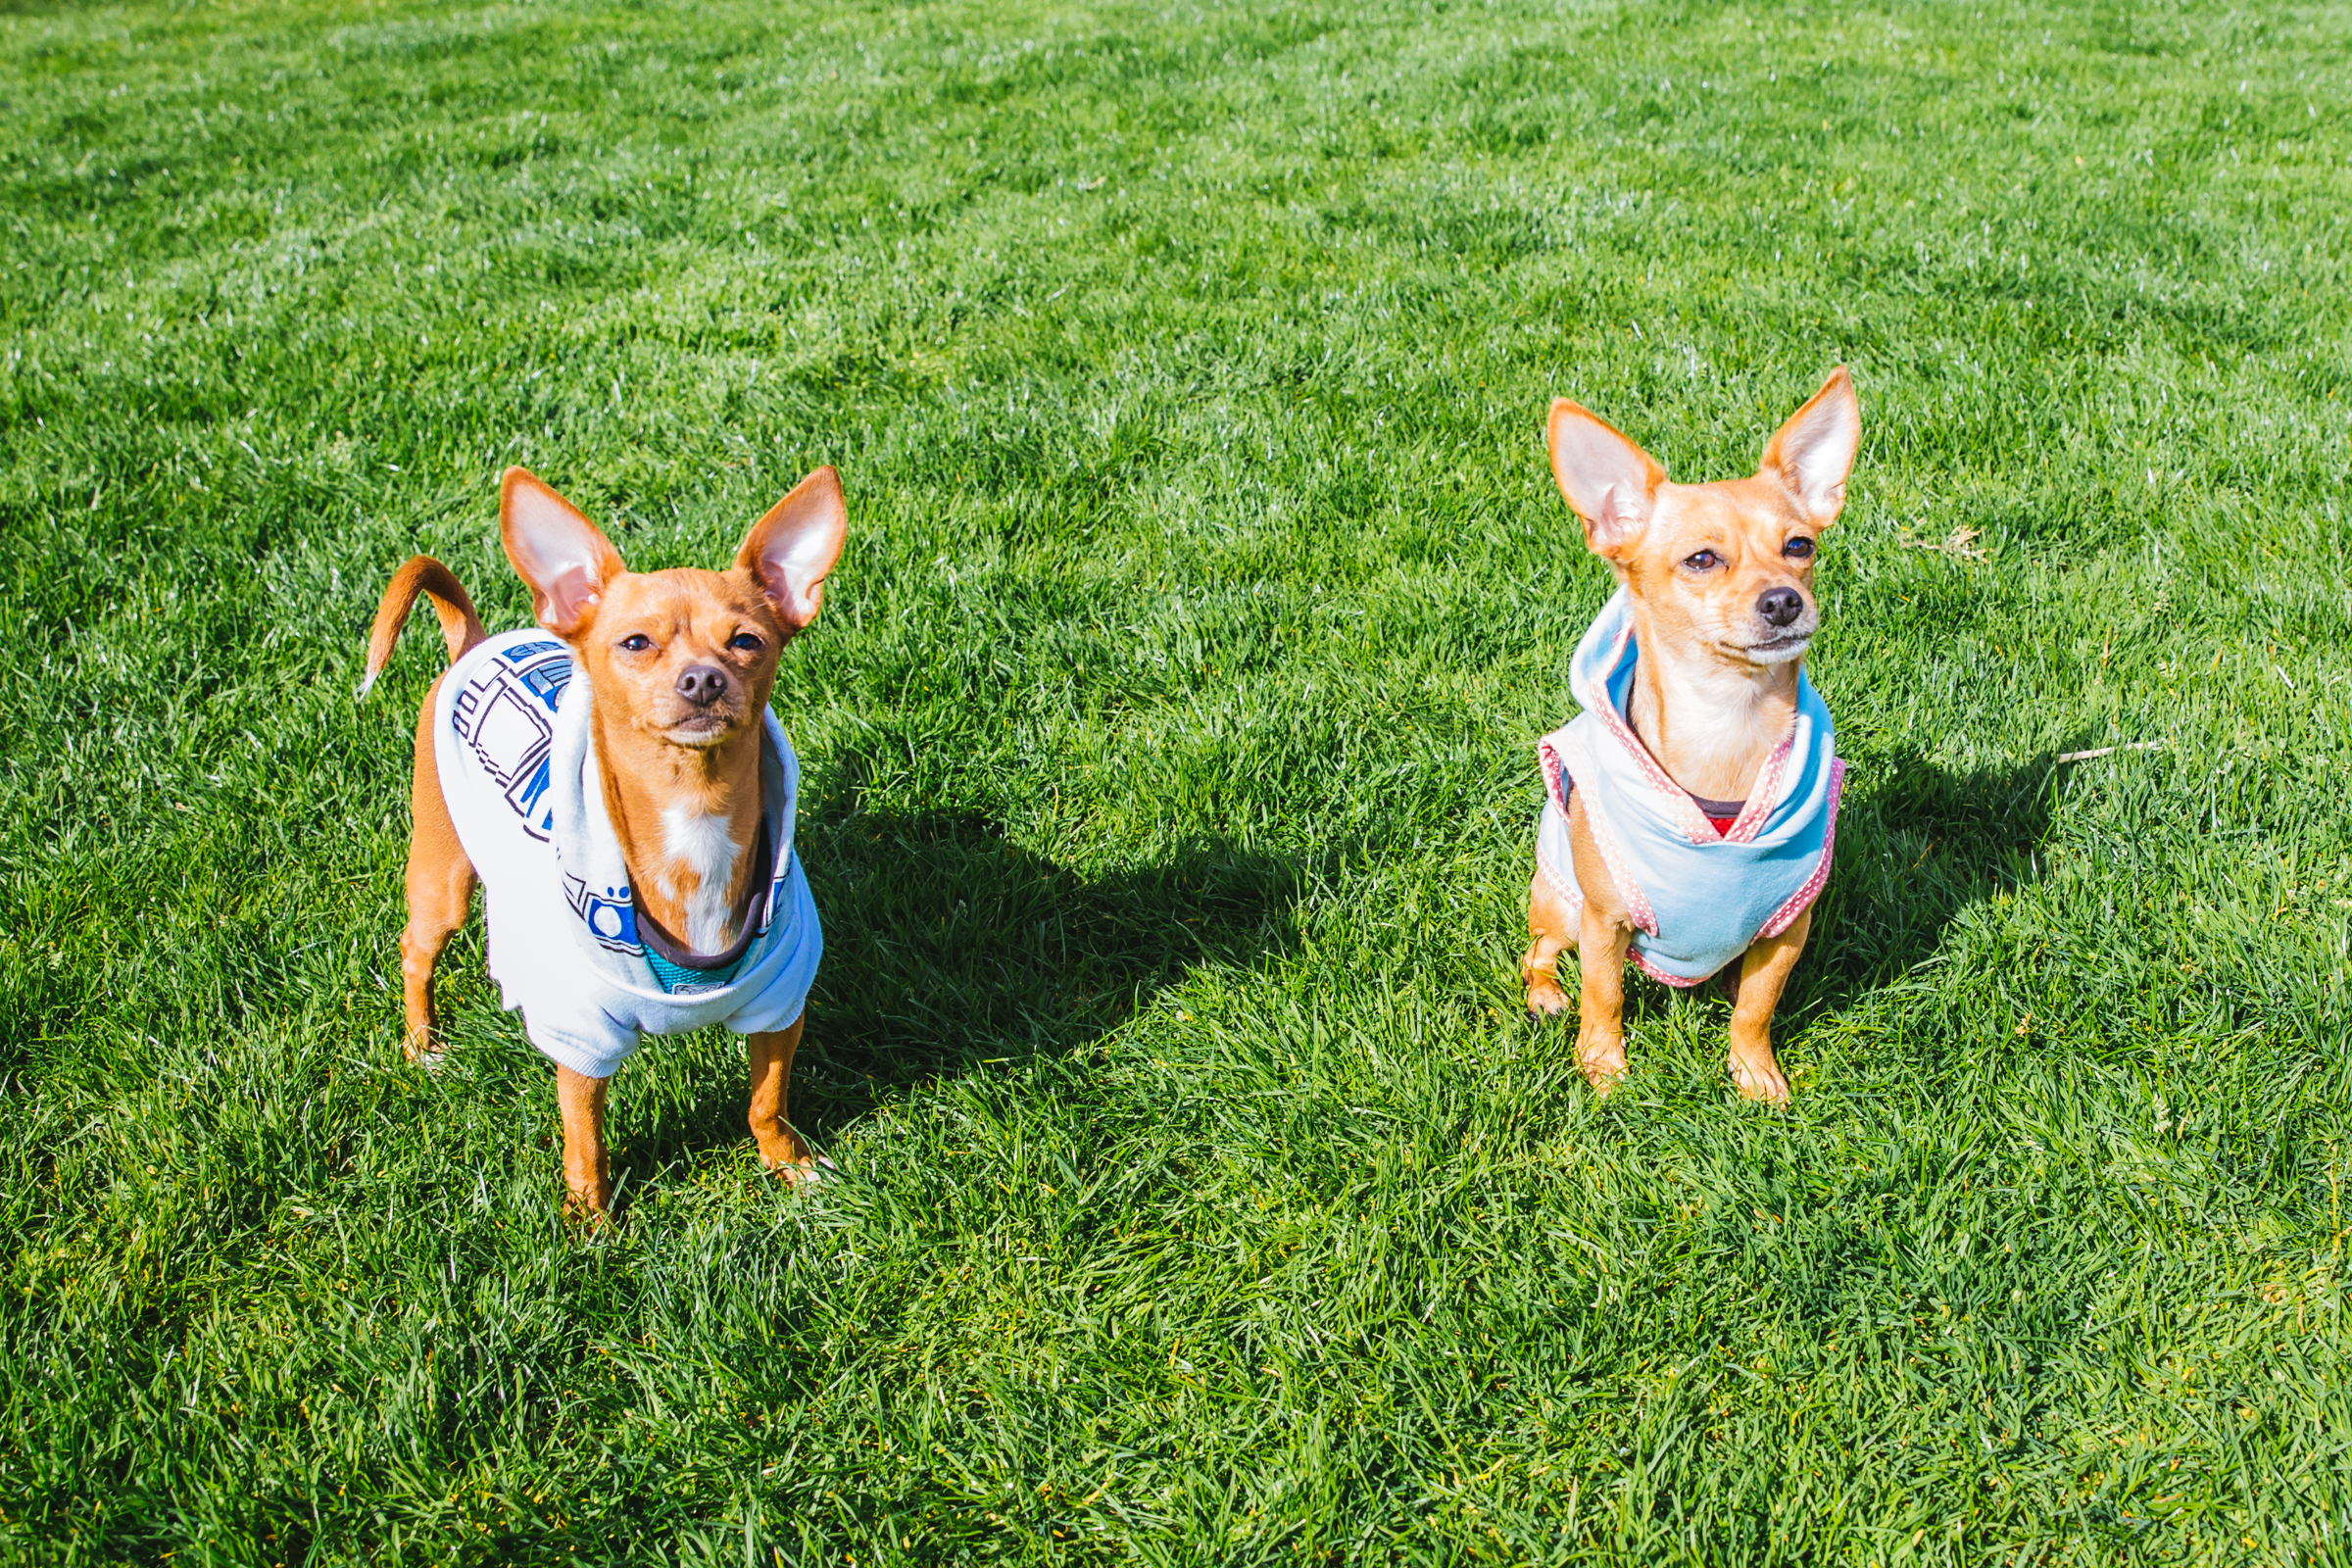 Meet our RUFFined Spotlight this week, brother and sister Chiweenies Roxy and Chacho! Roxy and Chacho were rescued out of Southern California by the Alvarez family and have made their home in the Emerald City! Roxy and Chacho will both be celebrating their second birthdays on May 23. They both love frozen peas, frozen pineapple bites, peanut butter and lots of love and attention. They also love warm sweaters and hoodies. But what they love MOST OF ALL - is diving into a warm pile of laundry, fresh out of the drier. As far as dislikes, Roxy doesn't like the sound of big trucks, and Chacho doesn't like to leave his bed...we know the feeling Chacho, we know the feeling. The Seattle RUFFined Spotlight is a weekly profile of local pets living and loving life in the PNW. If you or someone you know has a pet you'd like featured, email us at hello@seattlerefined.com or tag #SeattleRUFFined and your furbaby could be the next spotlighted! (Image: Sunita Martini / Seattle Refined).